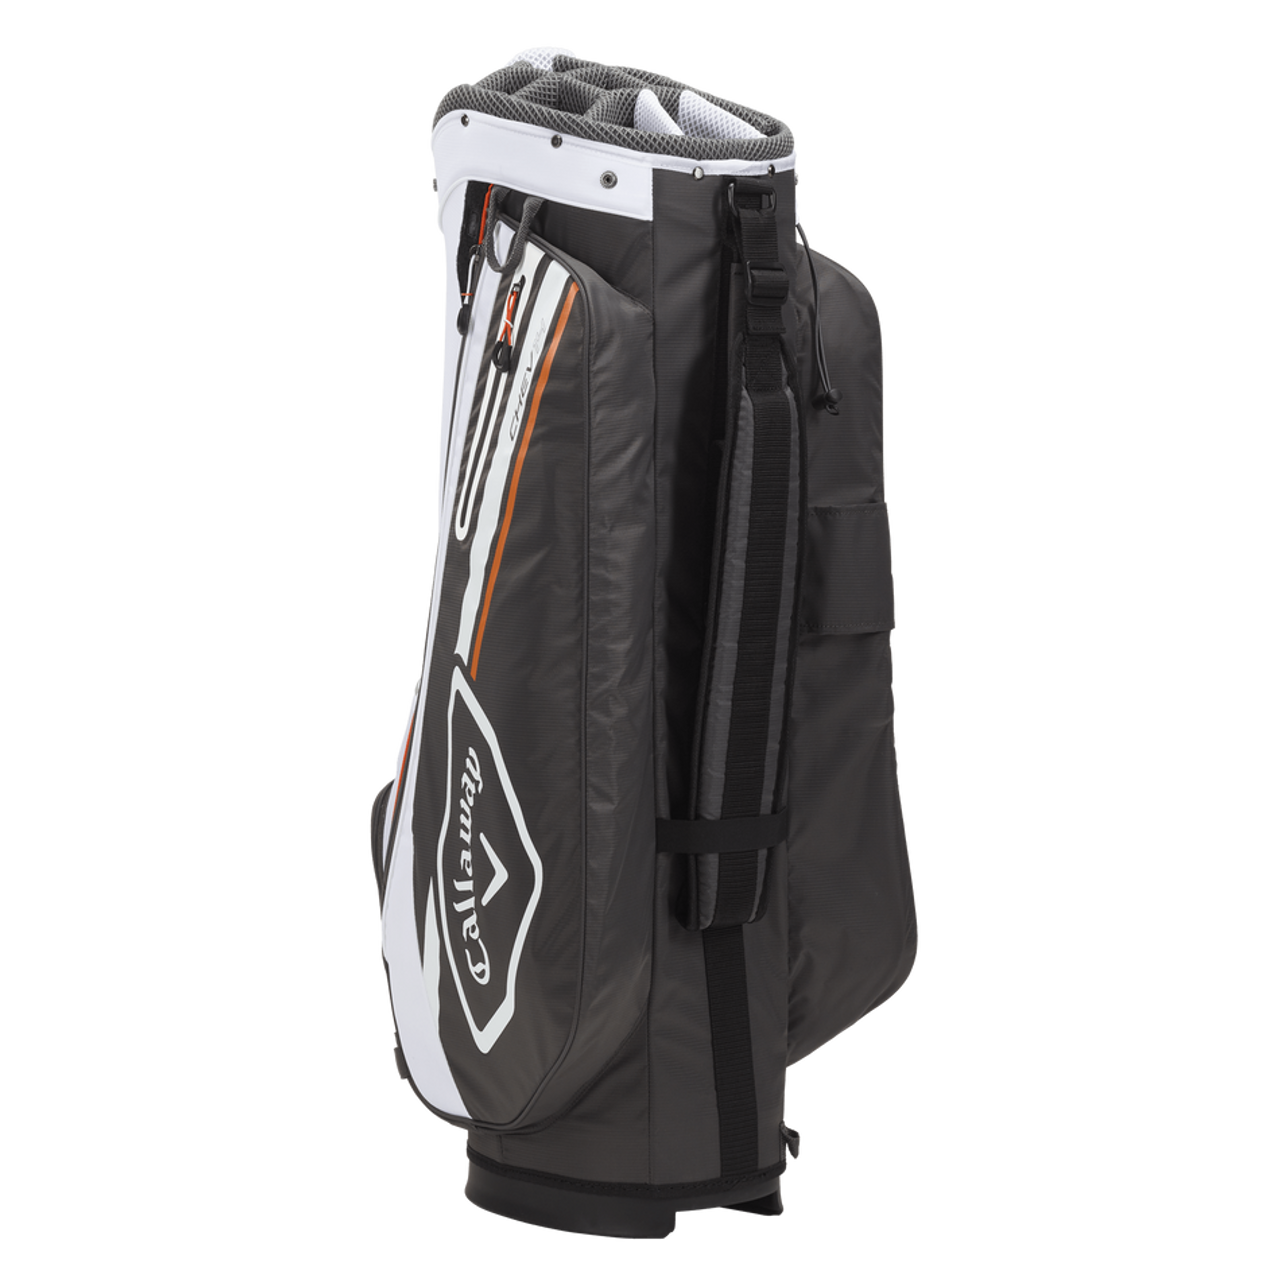 Callaway Chev 14 Cart Bag 2021 - Charcoal / White / Orange